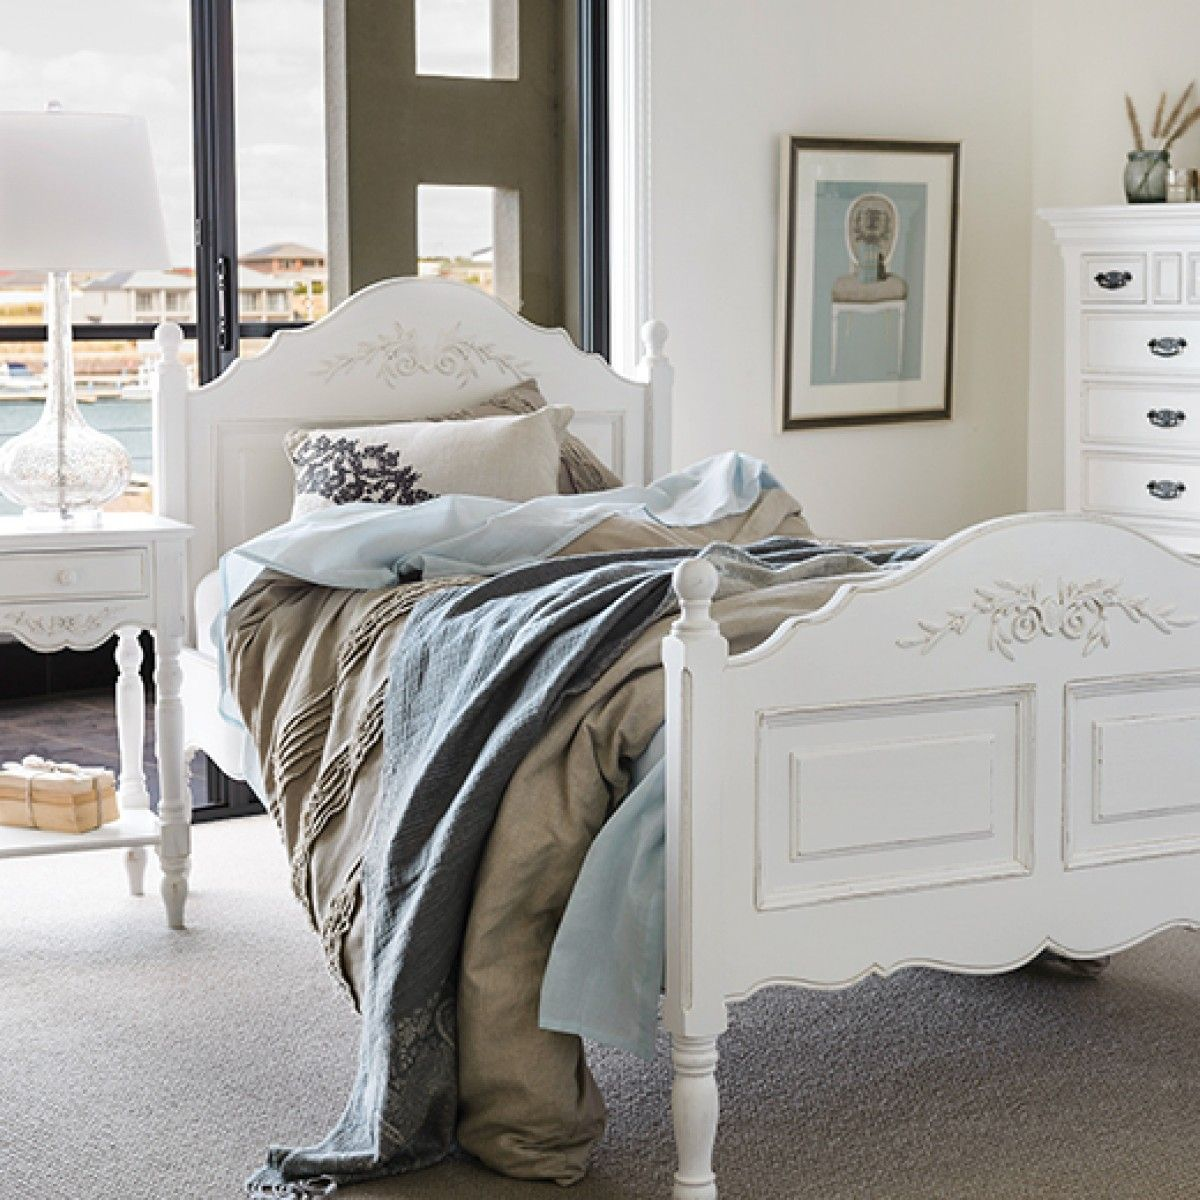 Buy Online Early Settler French Provincial Single Bed Decor - Settler bedroom furniture